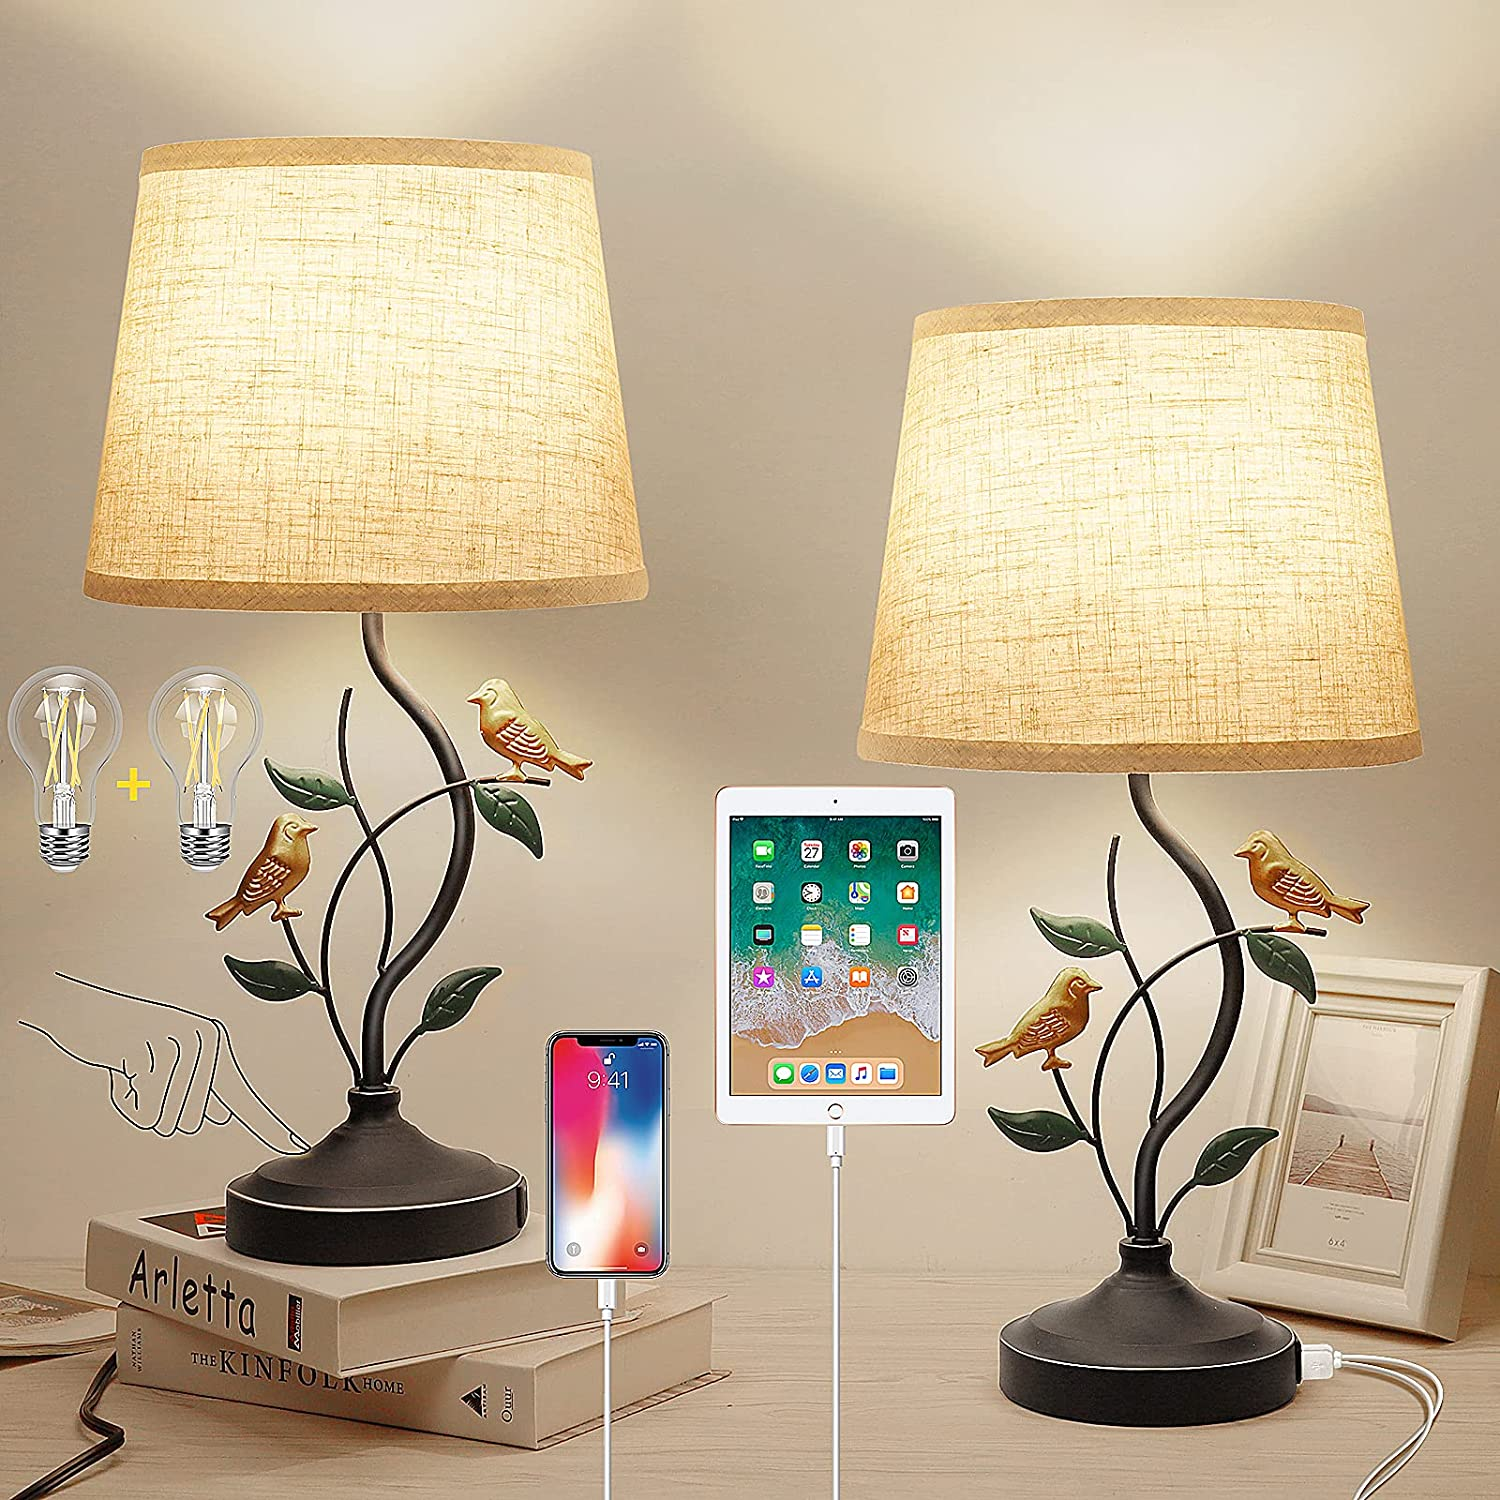 Table Lamps - Bedside Lamps with 2 USB Ports, Dimmable Nightstand Lamps with 6W LED Bulb, Touch Lamp with Fabric Shade for Bedroom, Living Room, Office Set of 2